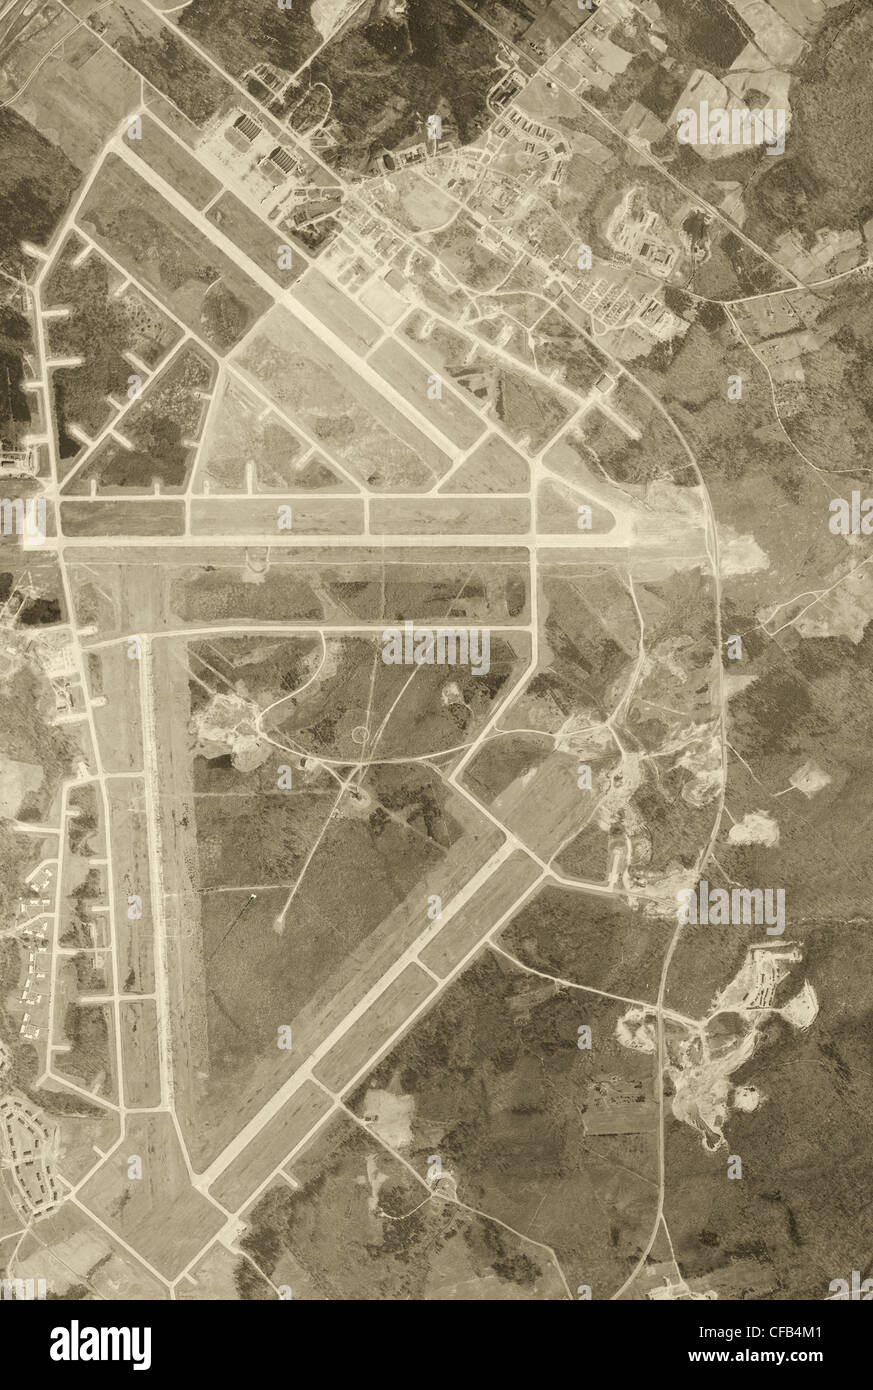 aerial photo map of Andrews Air Force Base, Prince George's county, Maryland, 1949 - Stock Image